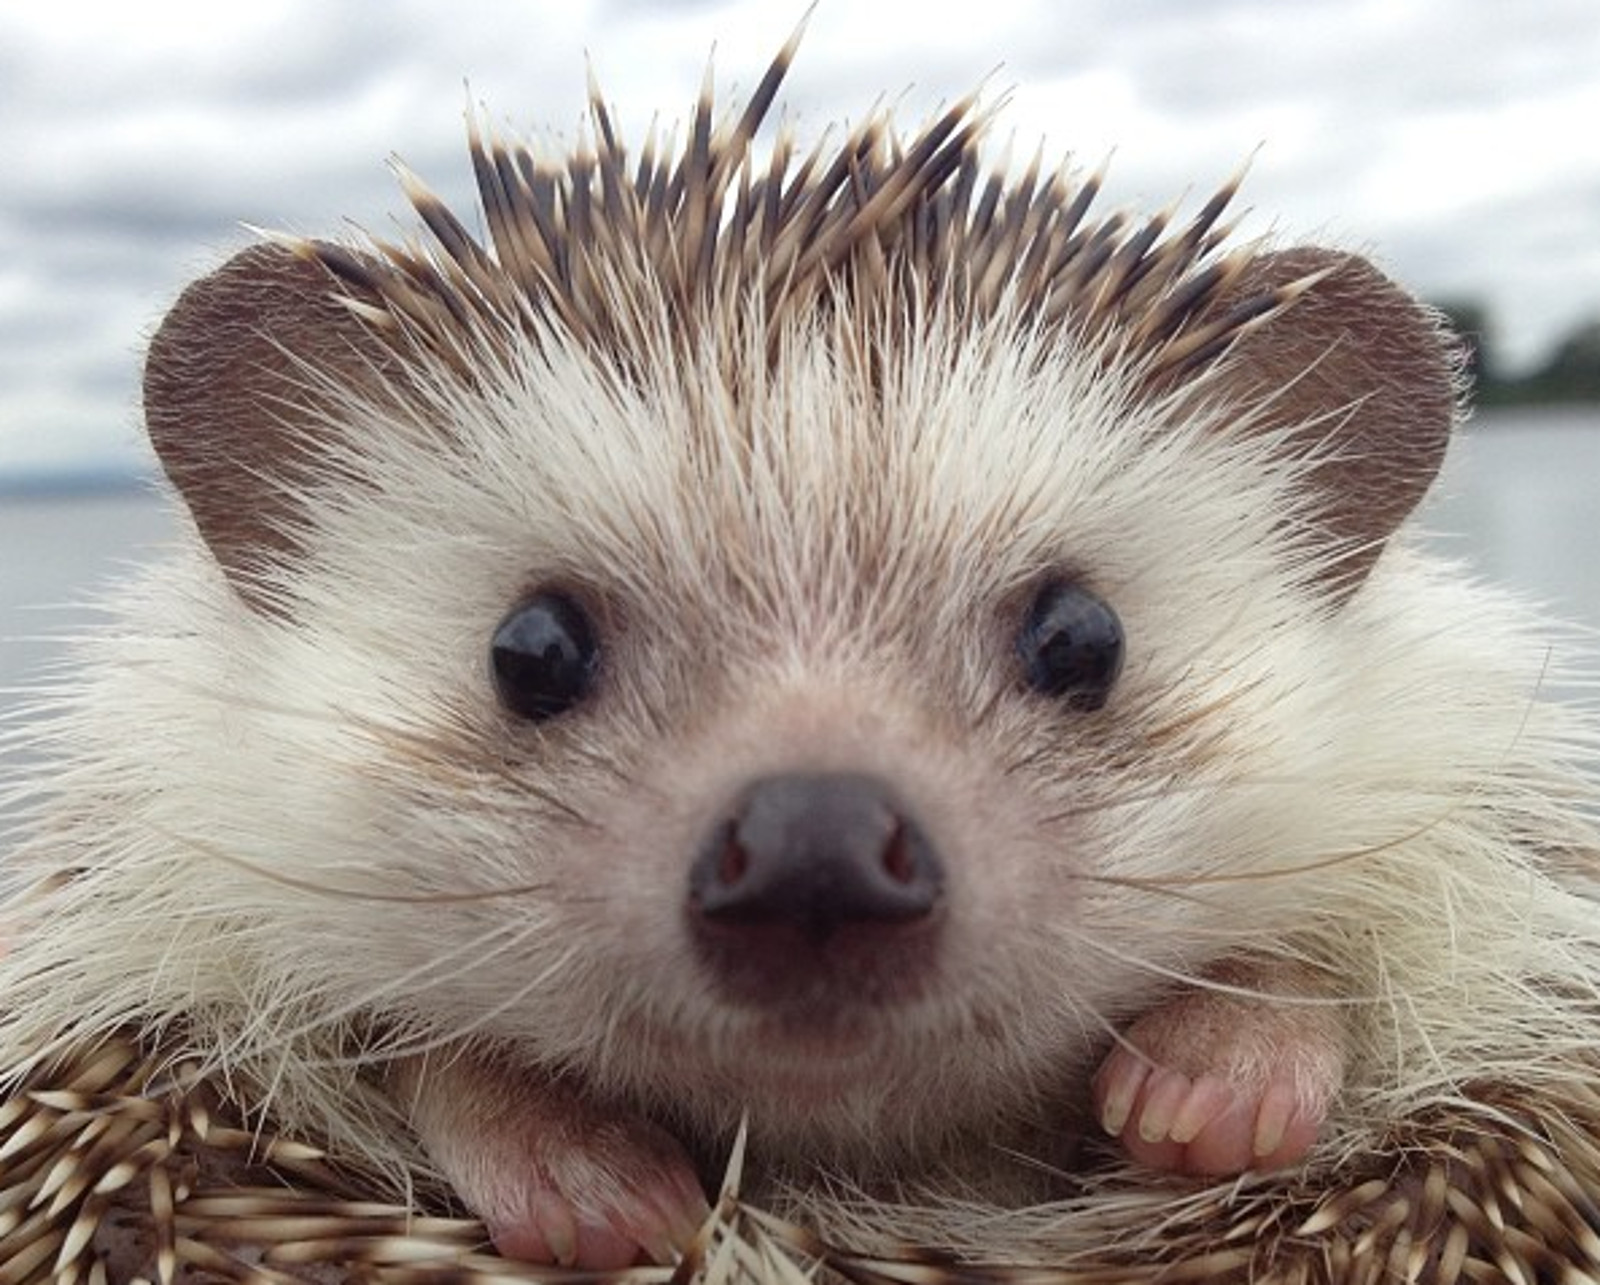 biddy the hedgehog